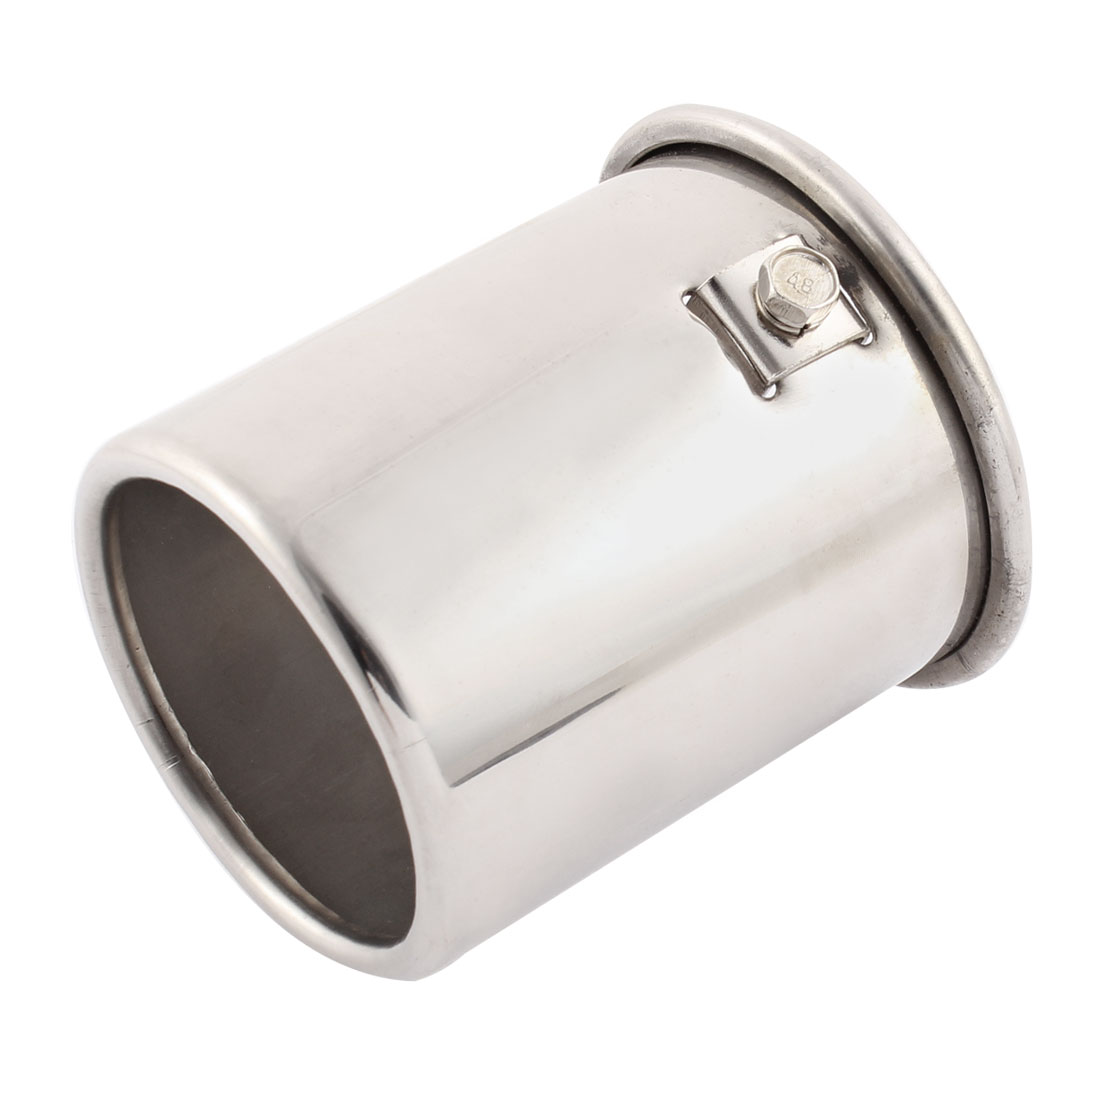 80mm x 72mm Inlet Silver Tone Stainless Steel Exhaust Muffler Tip for Car Truck